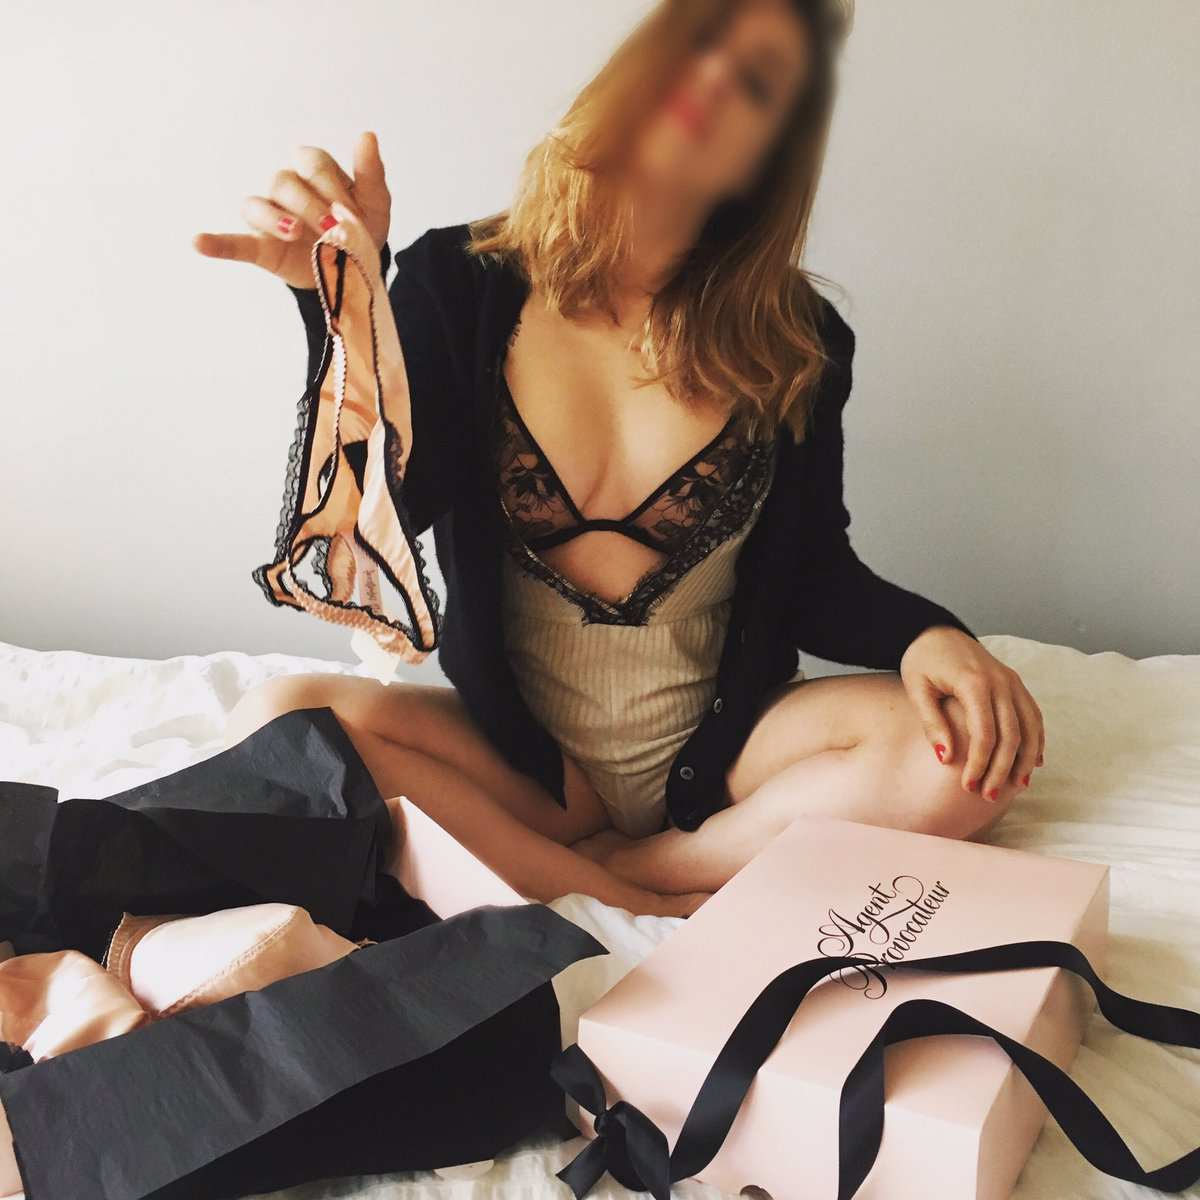 Independent Toronto Escort + Companion + International Travel Companion